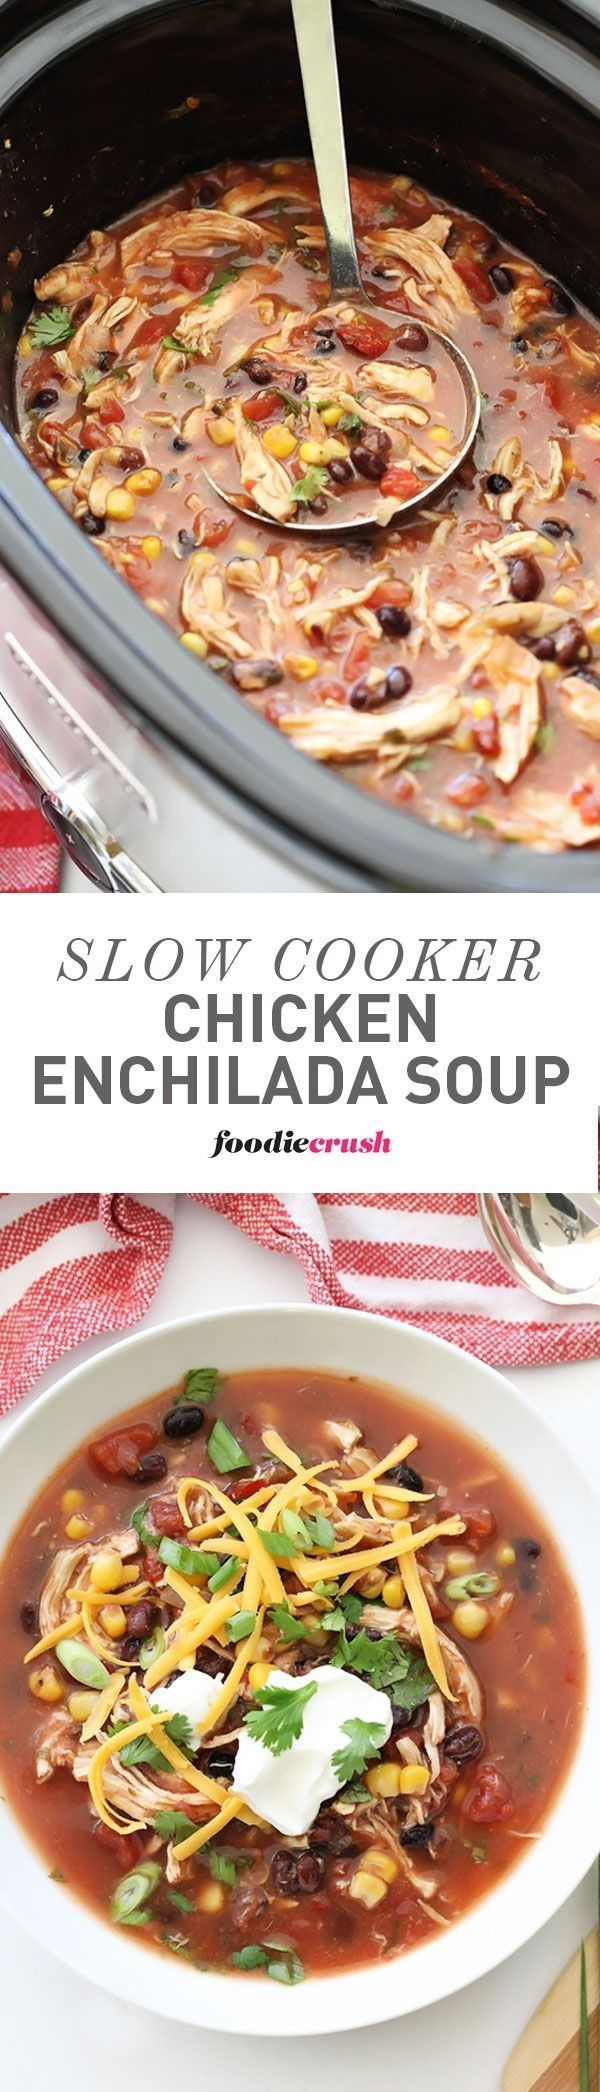 Get the recipe ♥ Slow Cooker Chicken Enchilada Soup @recipes_to_go